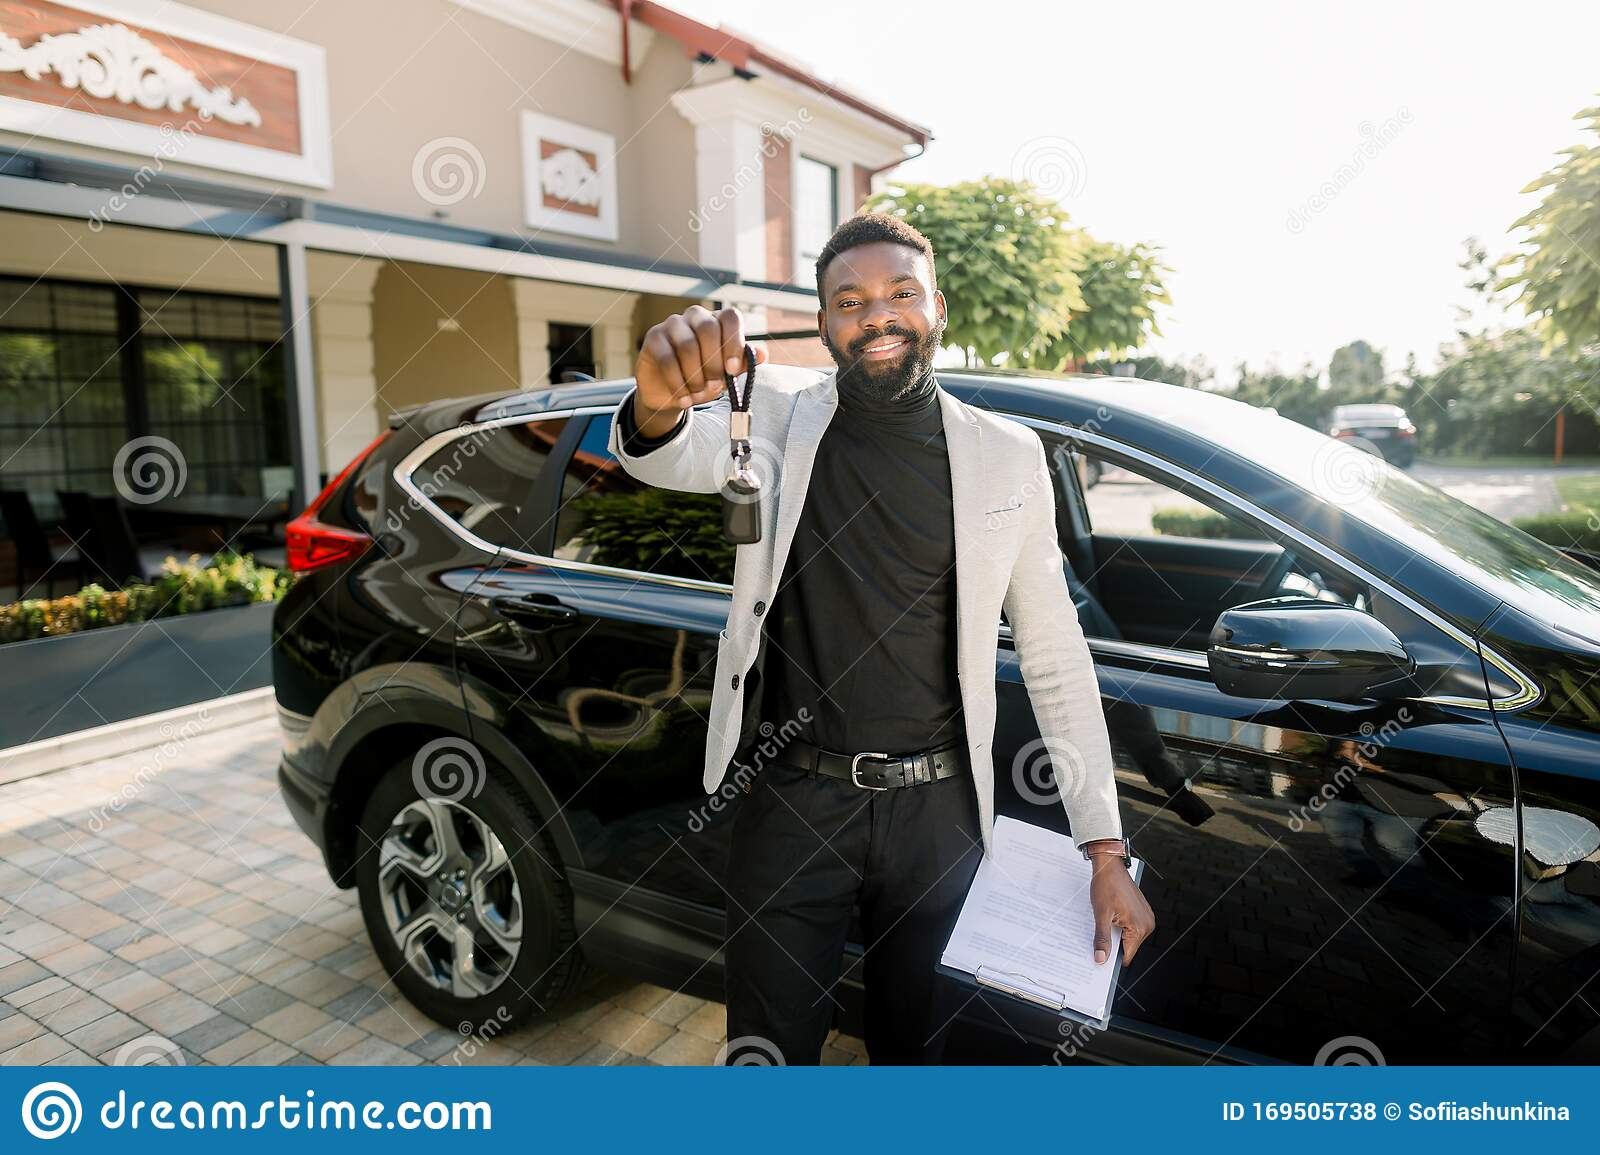 Happy African American Man Showing Car Key Standing Near New Black Car Crossover Outdoors Young African American Stock Photo Image Of Luxury Approved 169505738